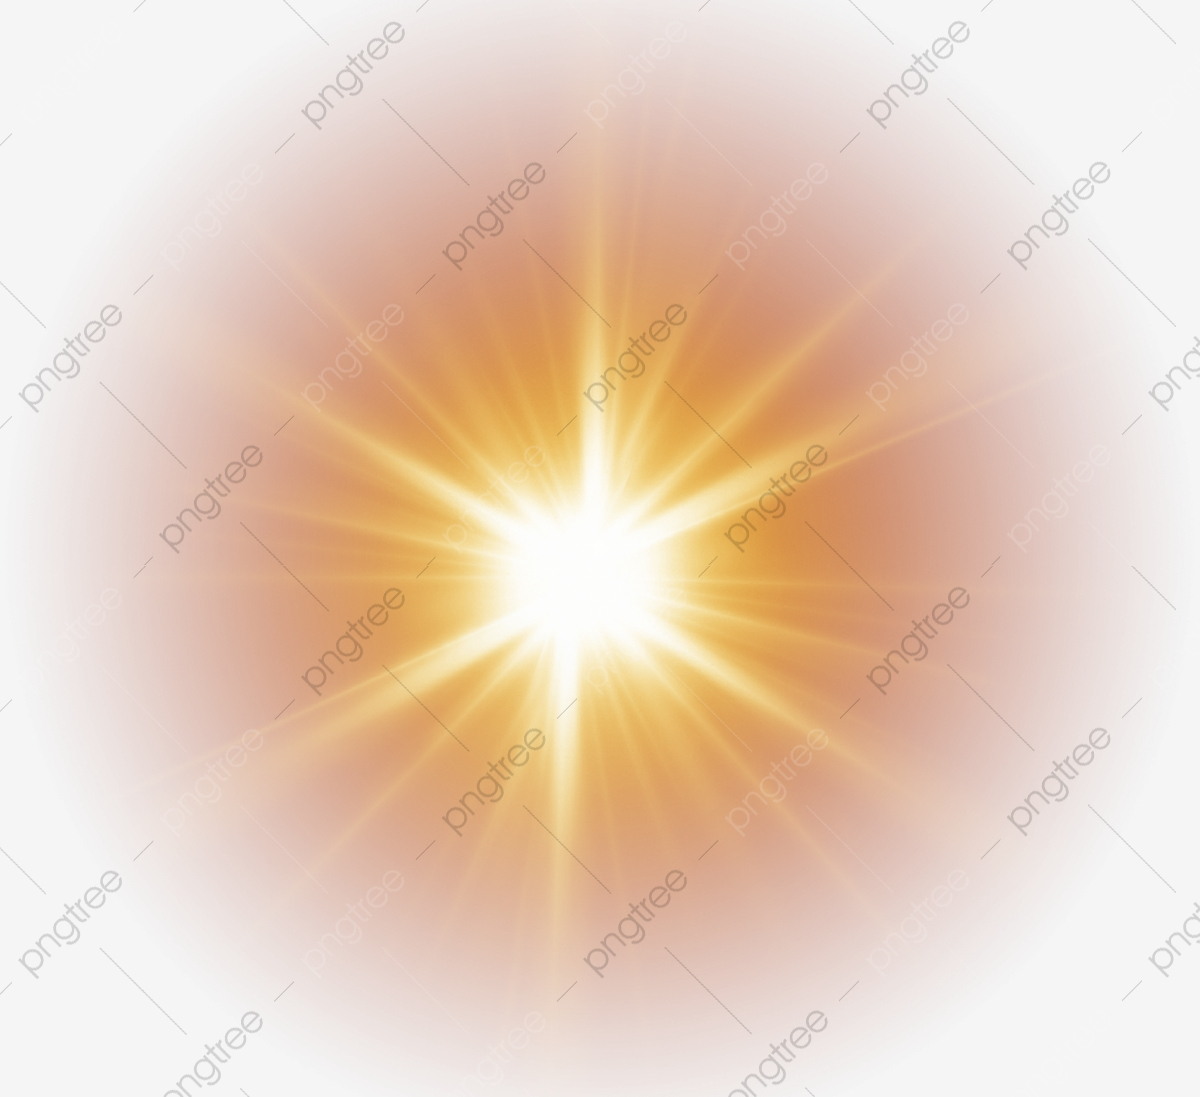 Sunlight, Tang Light, Sun PNG Transparent Image and Clipart.